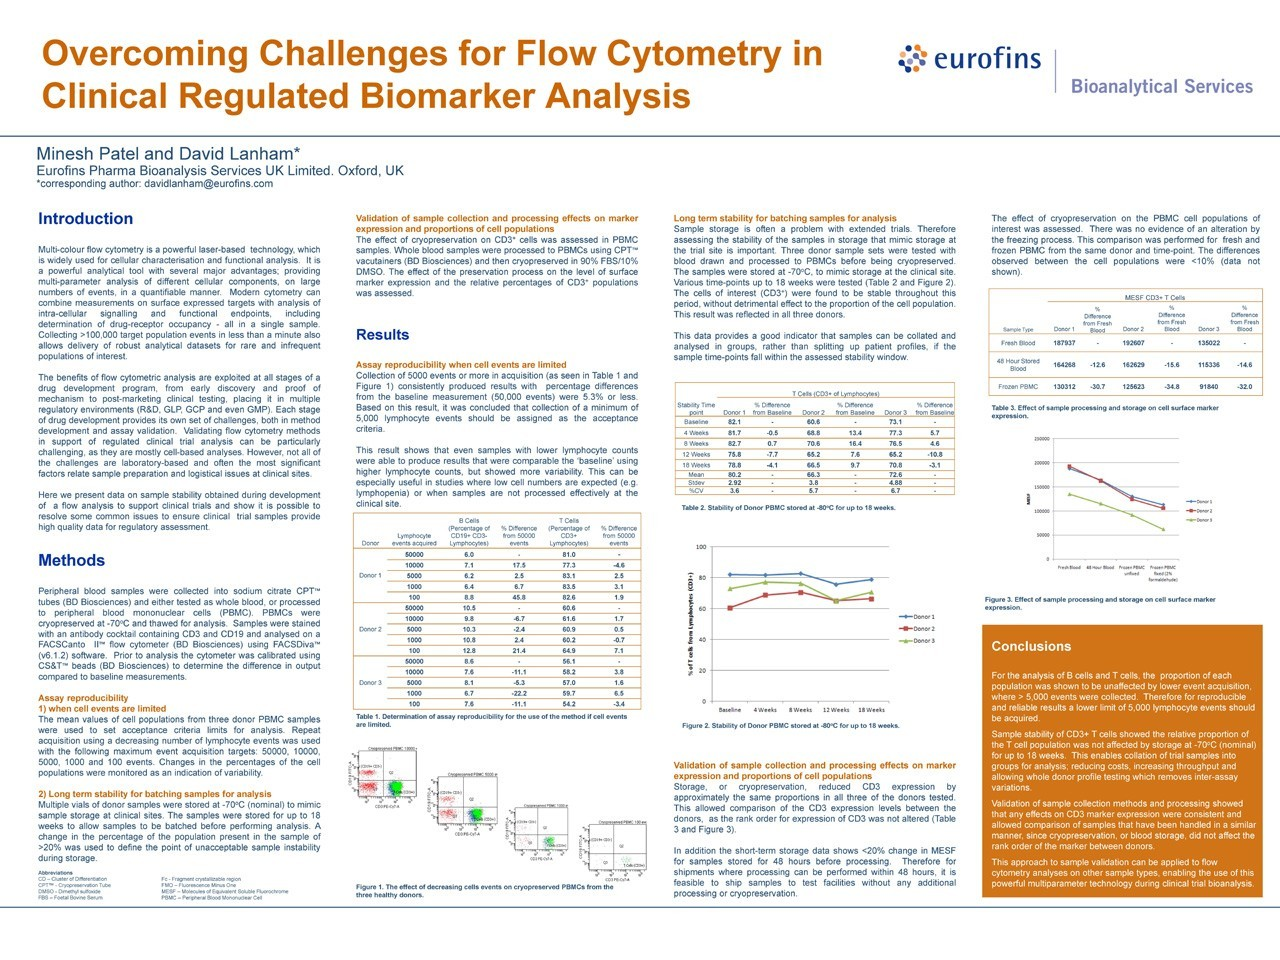 Poster- Overcoming Challenges in Clinical Biomarker Analysis by Flow Cytometry 1280